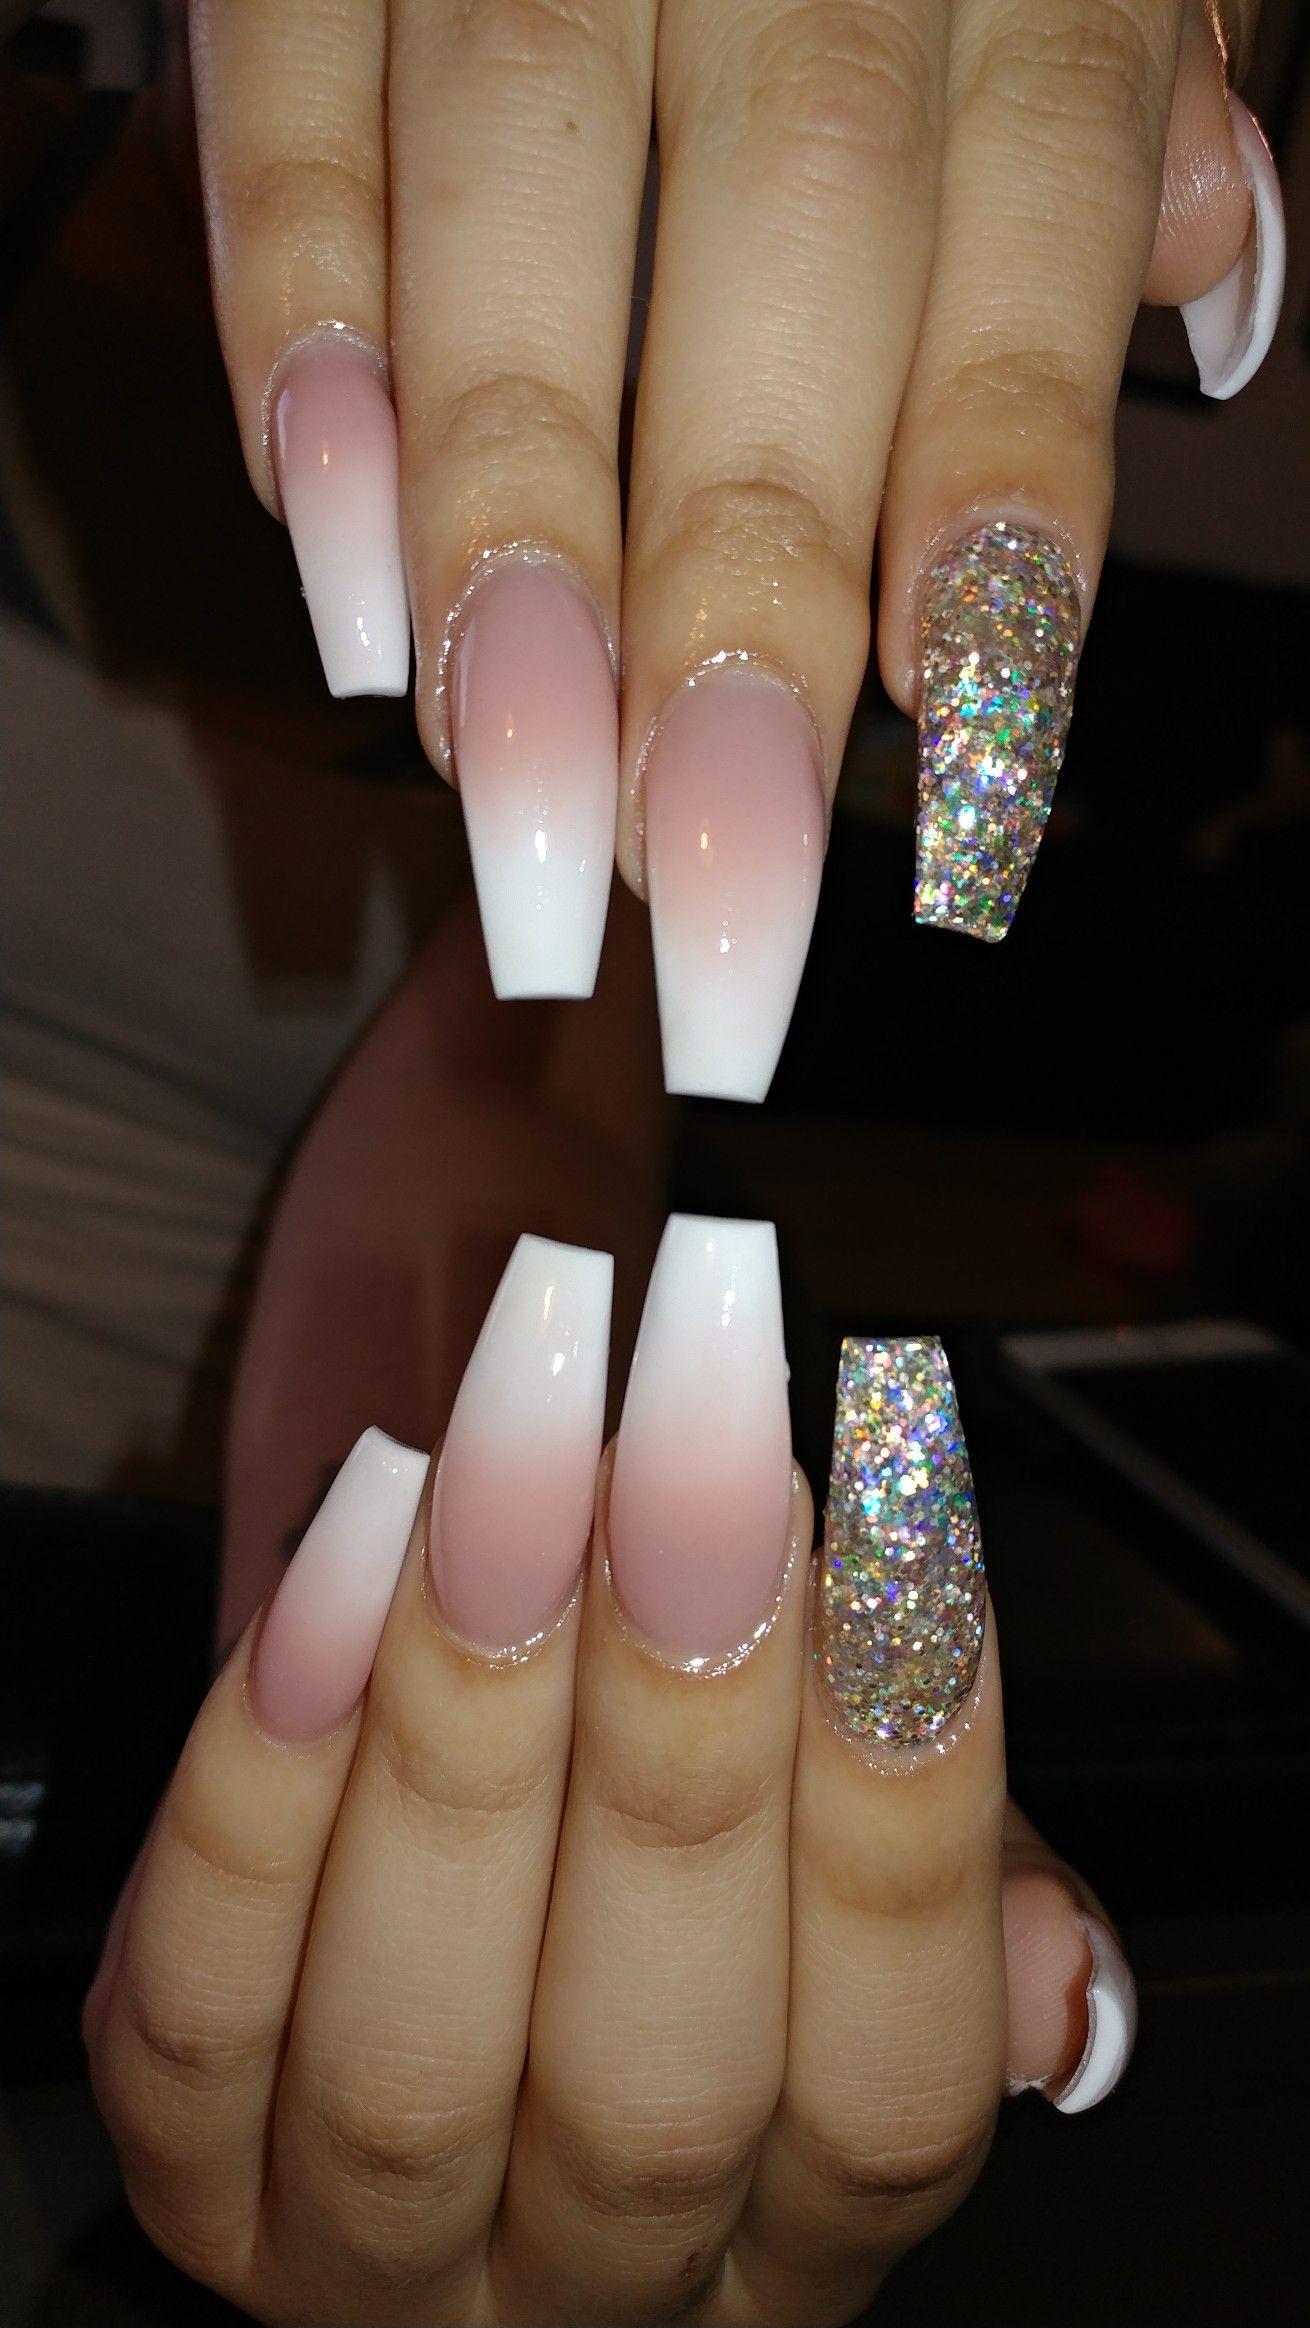 Long Ombre Acrylic Nails With Images Ombre Acrylic Nails Long Nails Luxury Nails